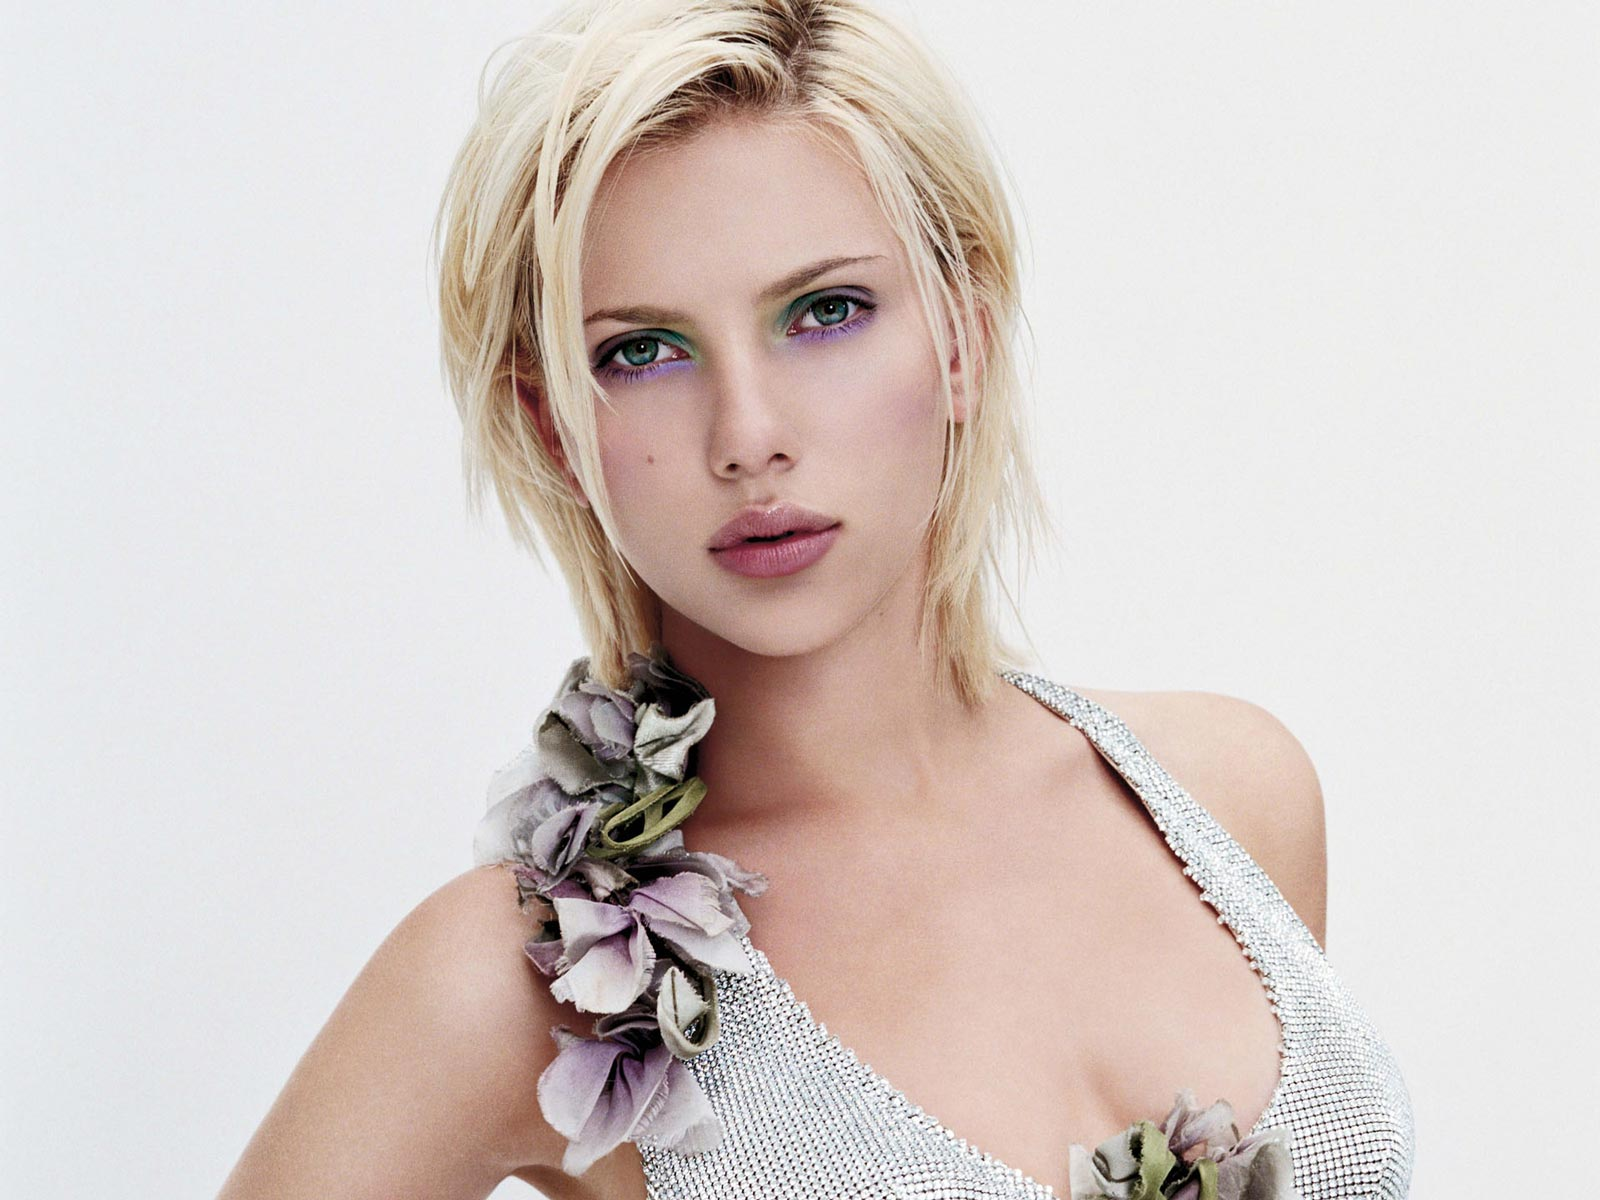 Scarlett johansson 39 s uncensored nude shots from sci fi for Best women pictures